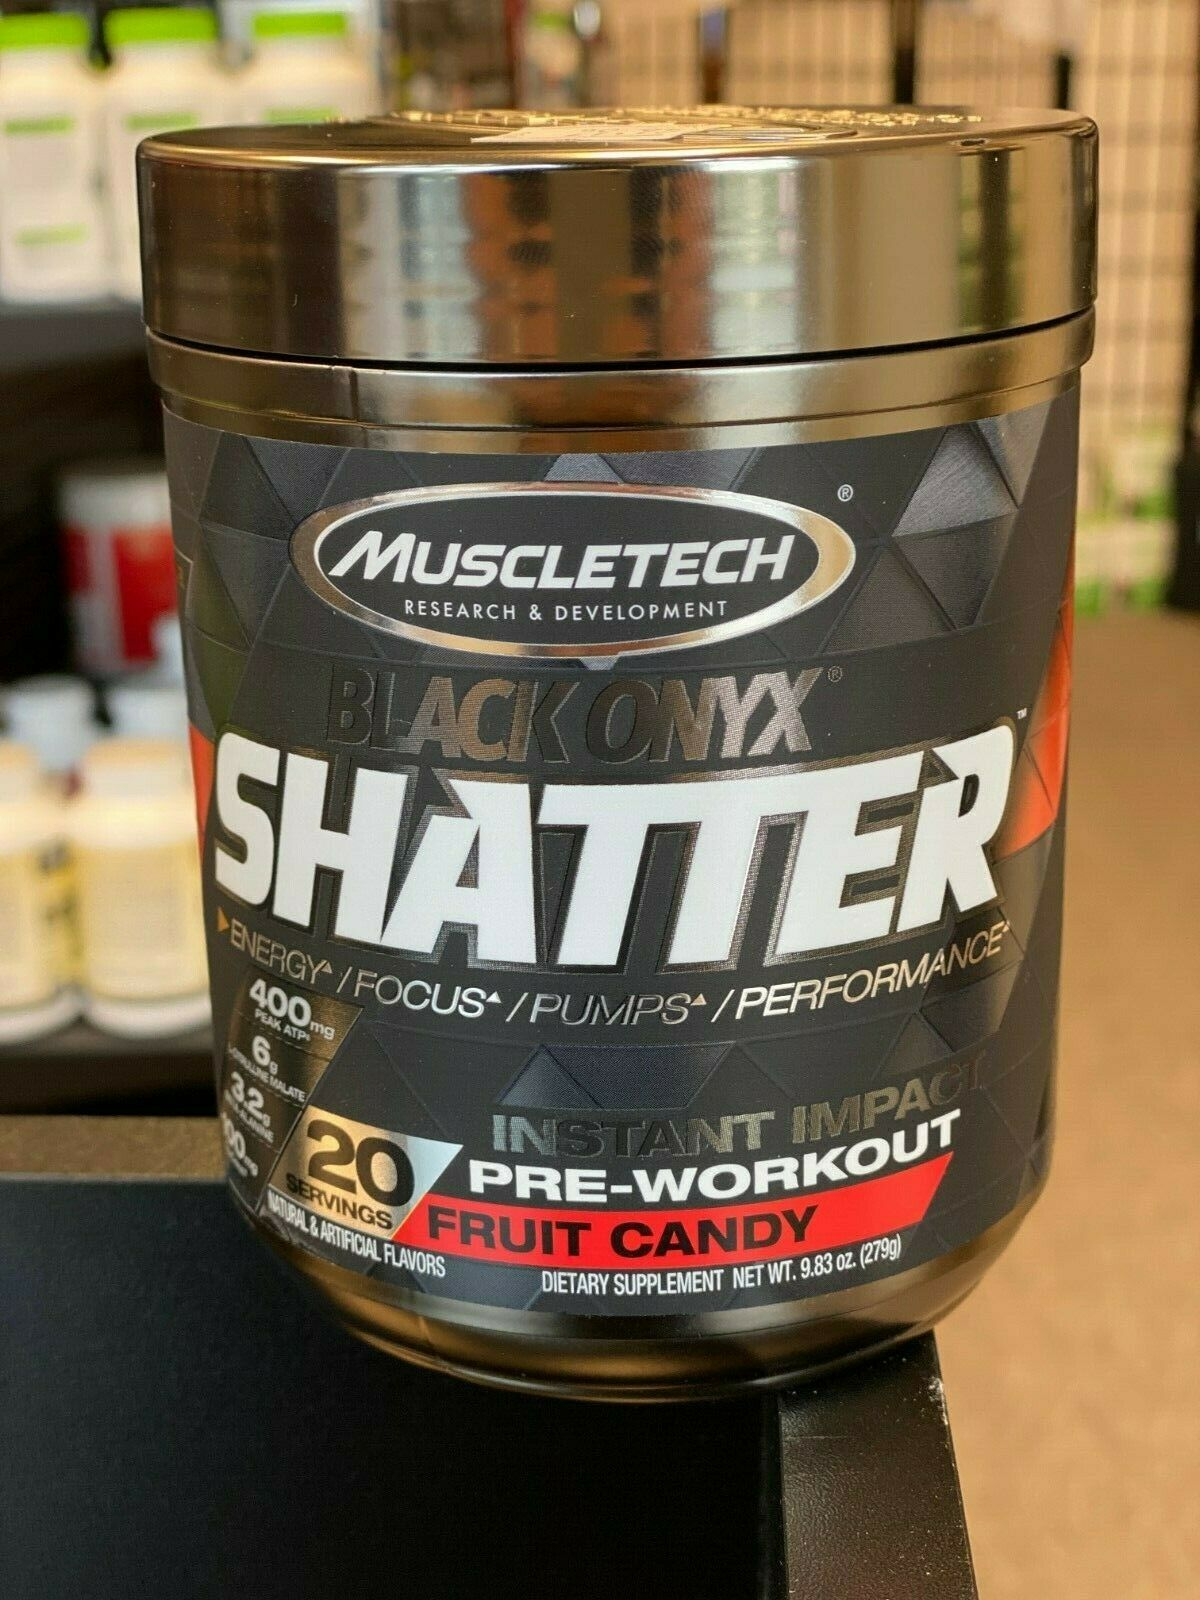 MuscleTech Shatter Back Onyx Pre Workout 20 Servings Free Shipping